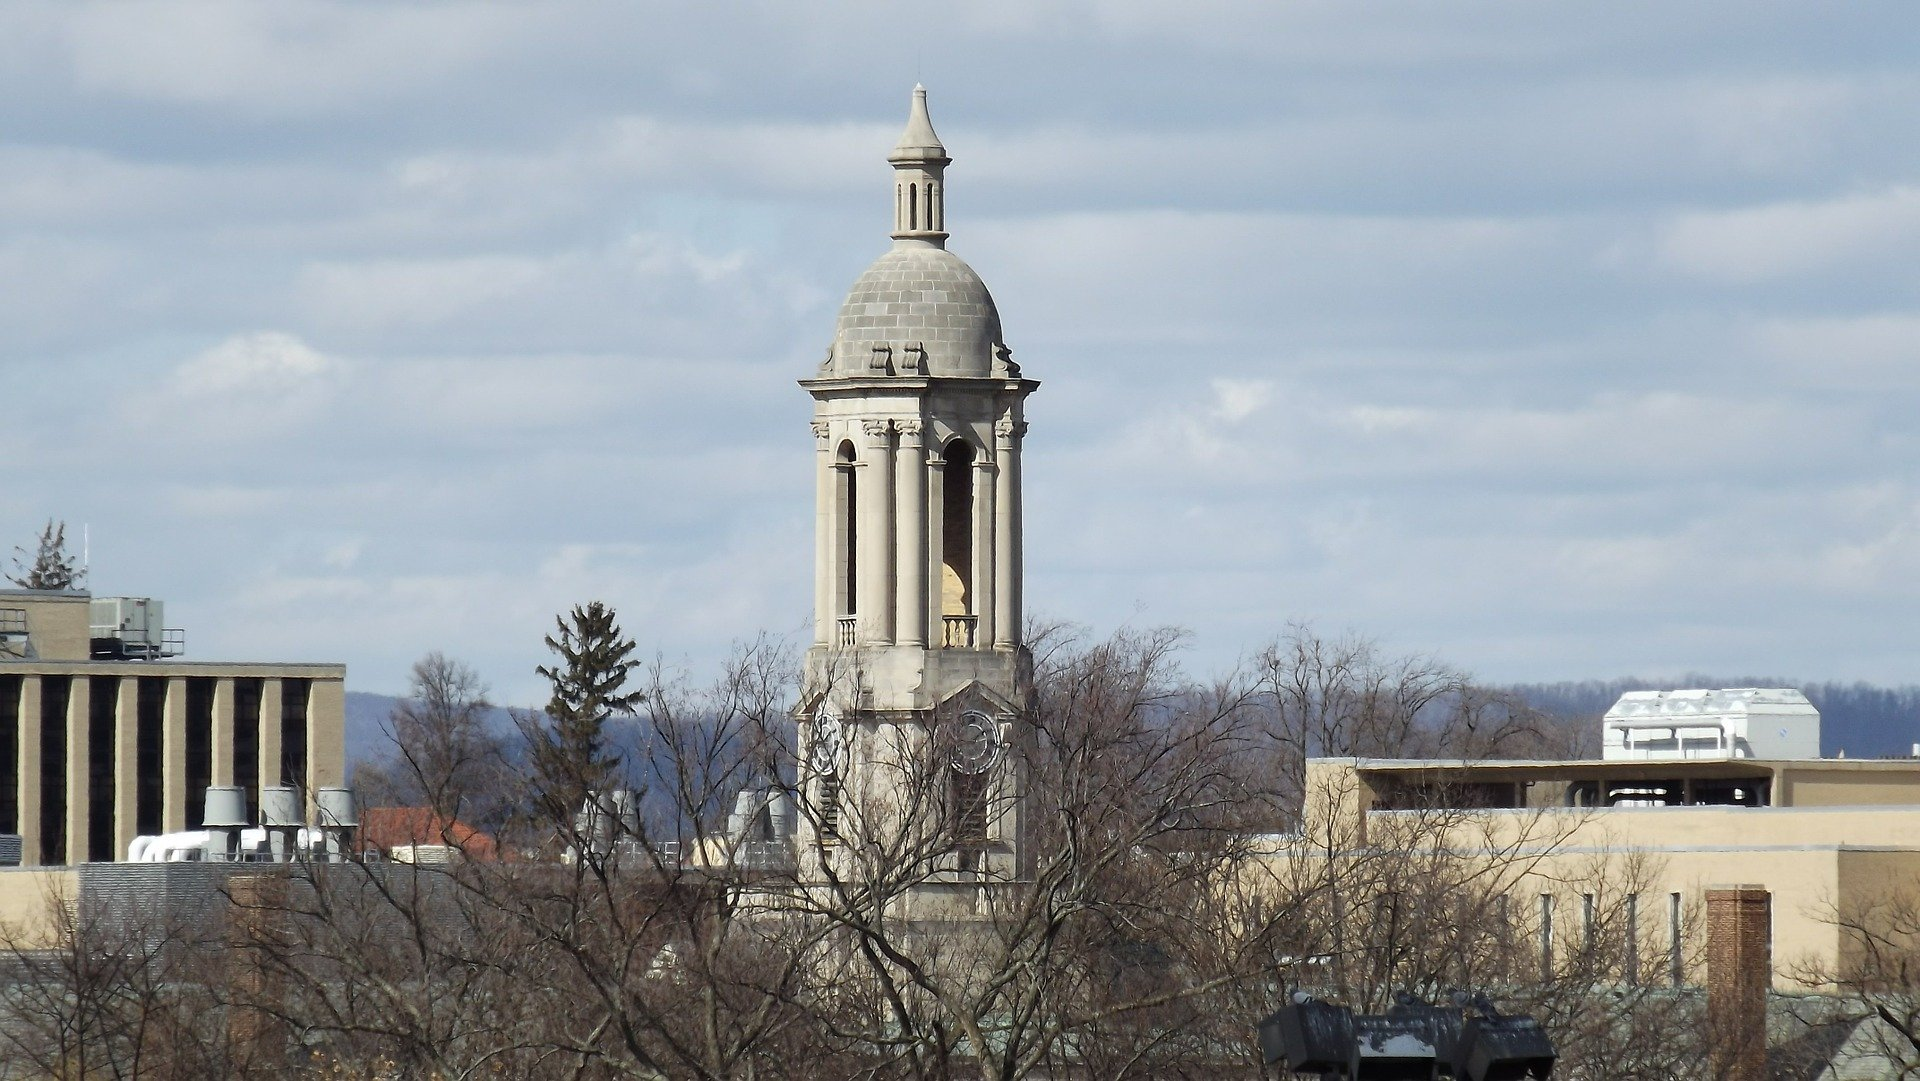 Four things to keep in mind for Penn State commencement weekend